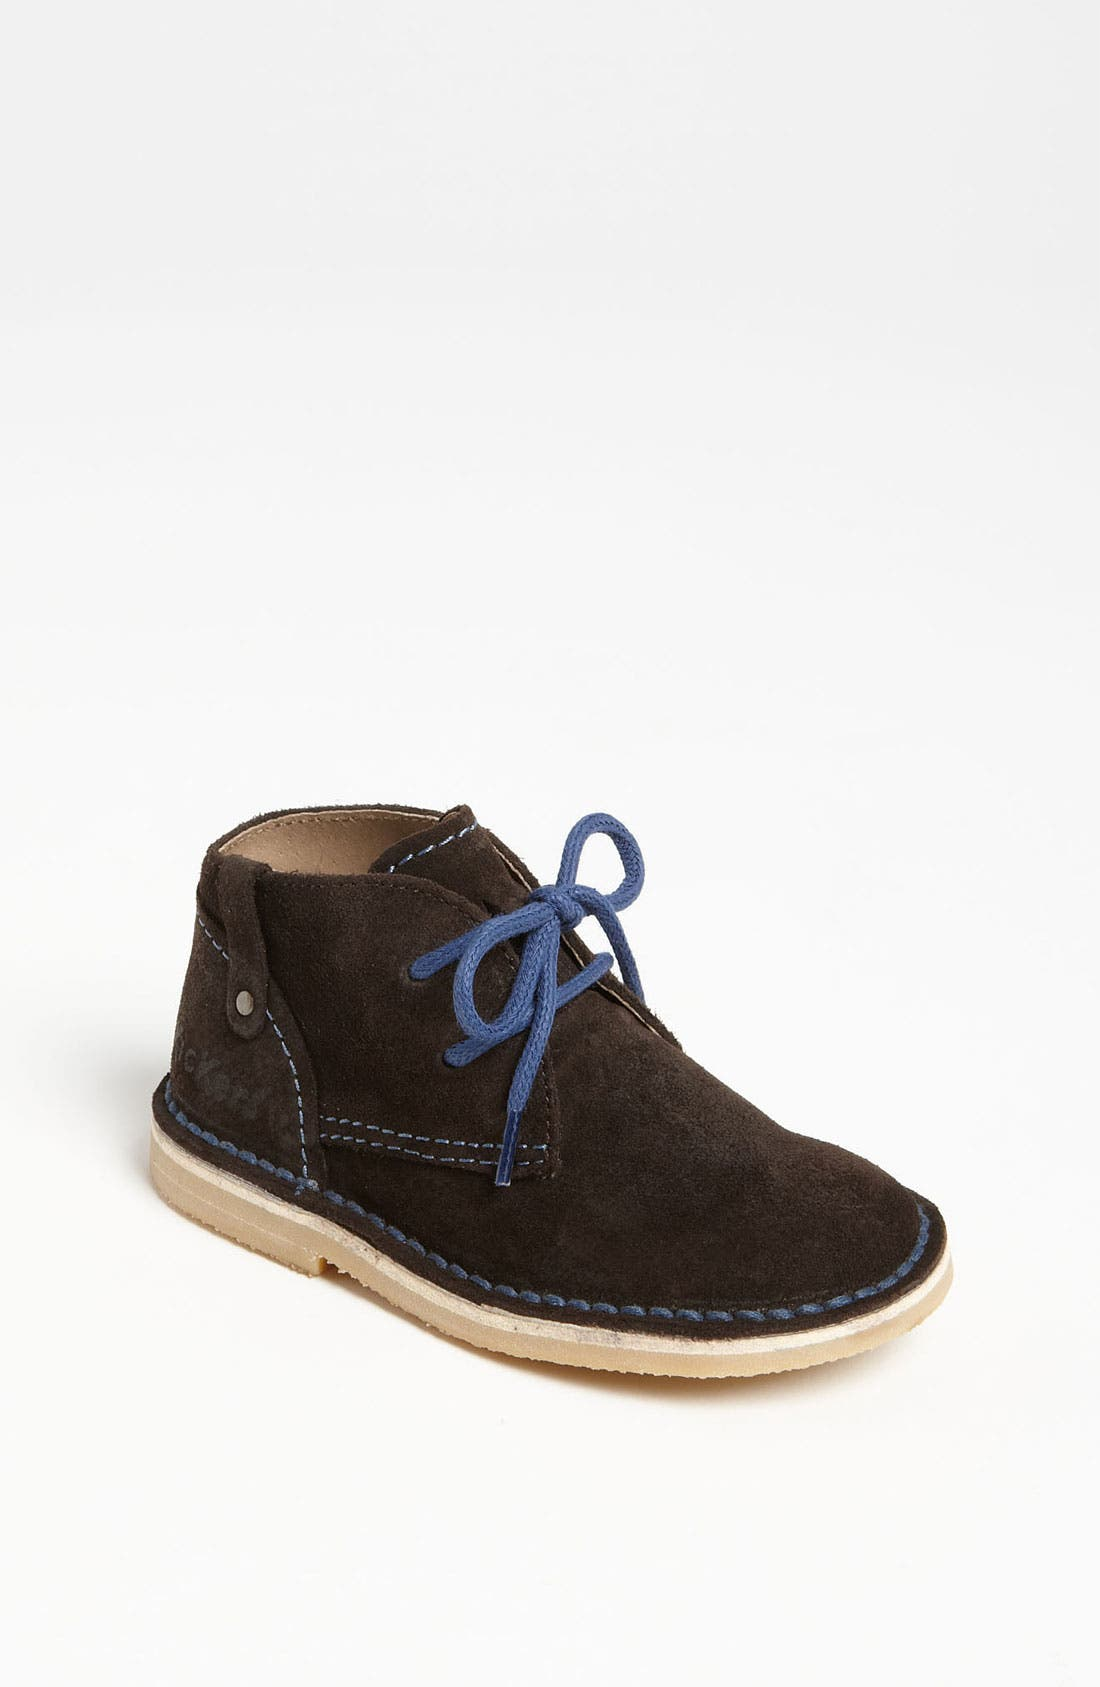 Main Image - Kickers 'Corentine' Boot (Toddler & Little Kid)